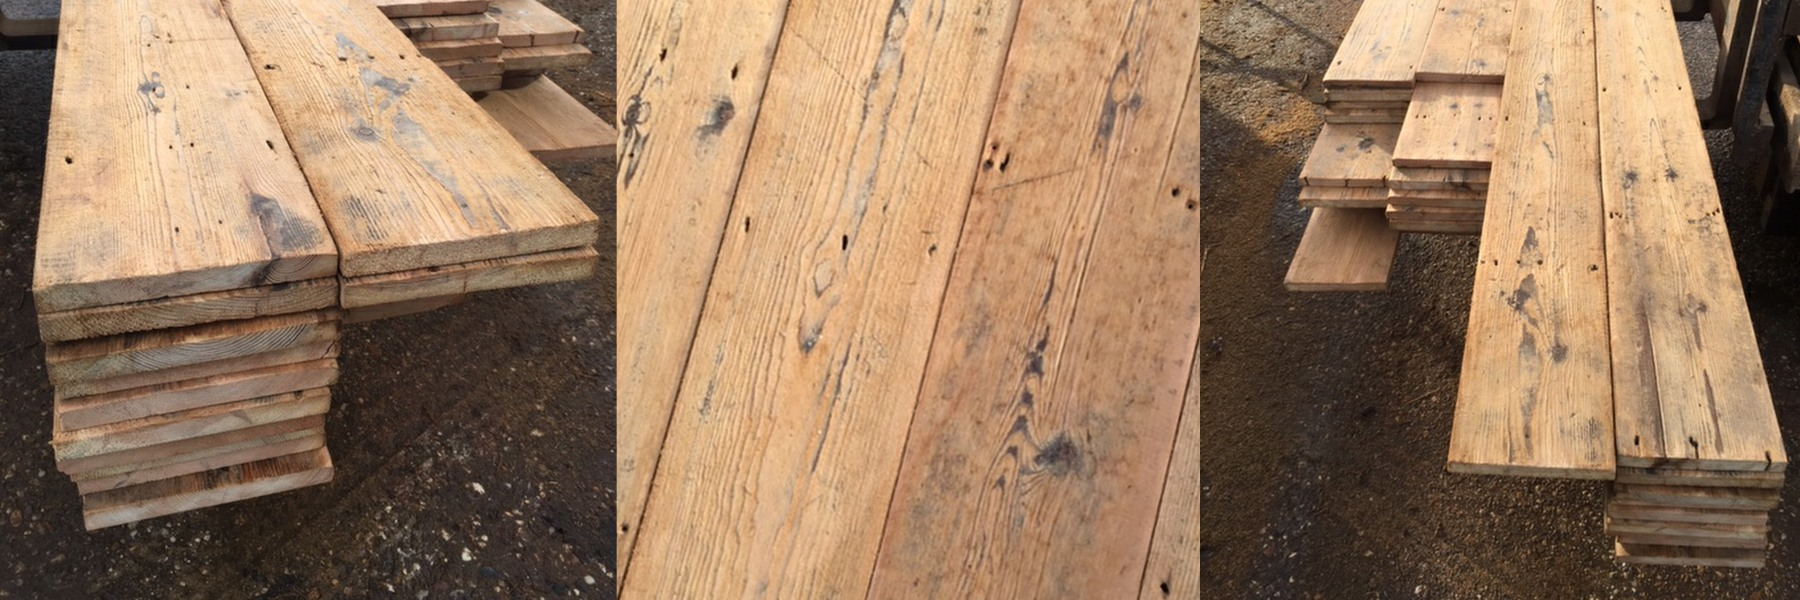 Hand finished period pine floor board from treesave reclamation yard suffolk essex